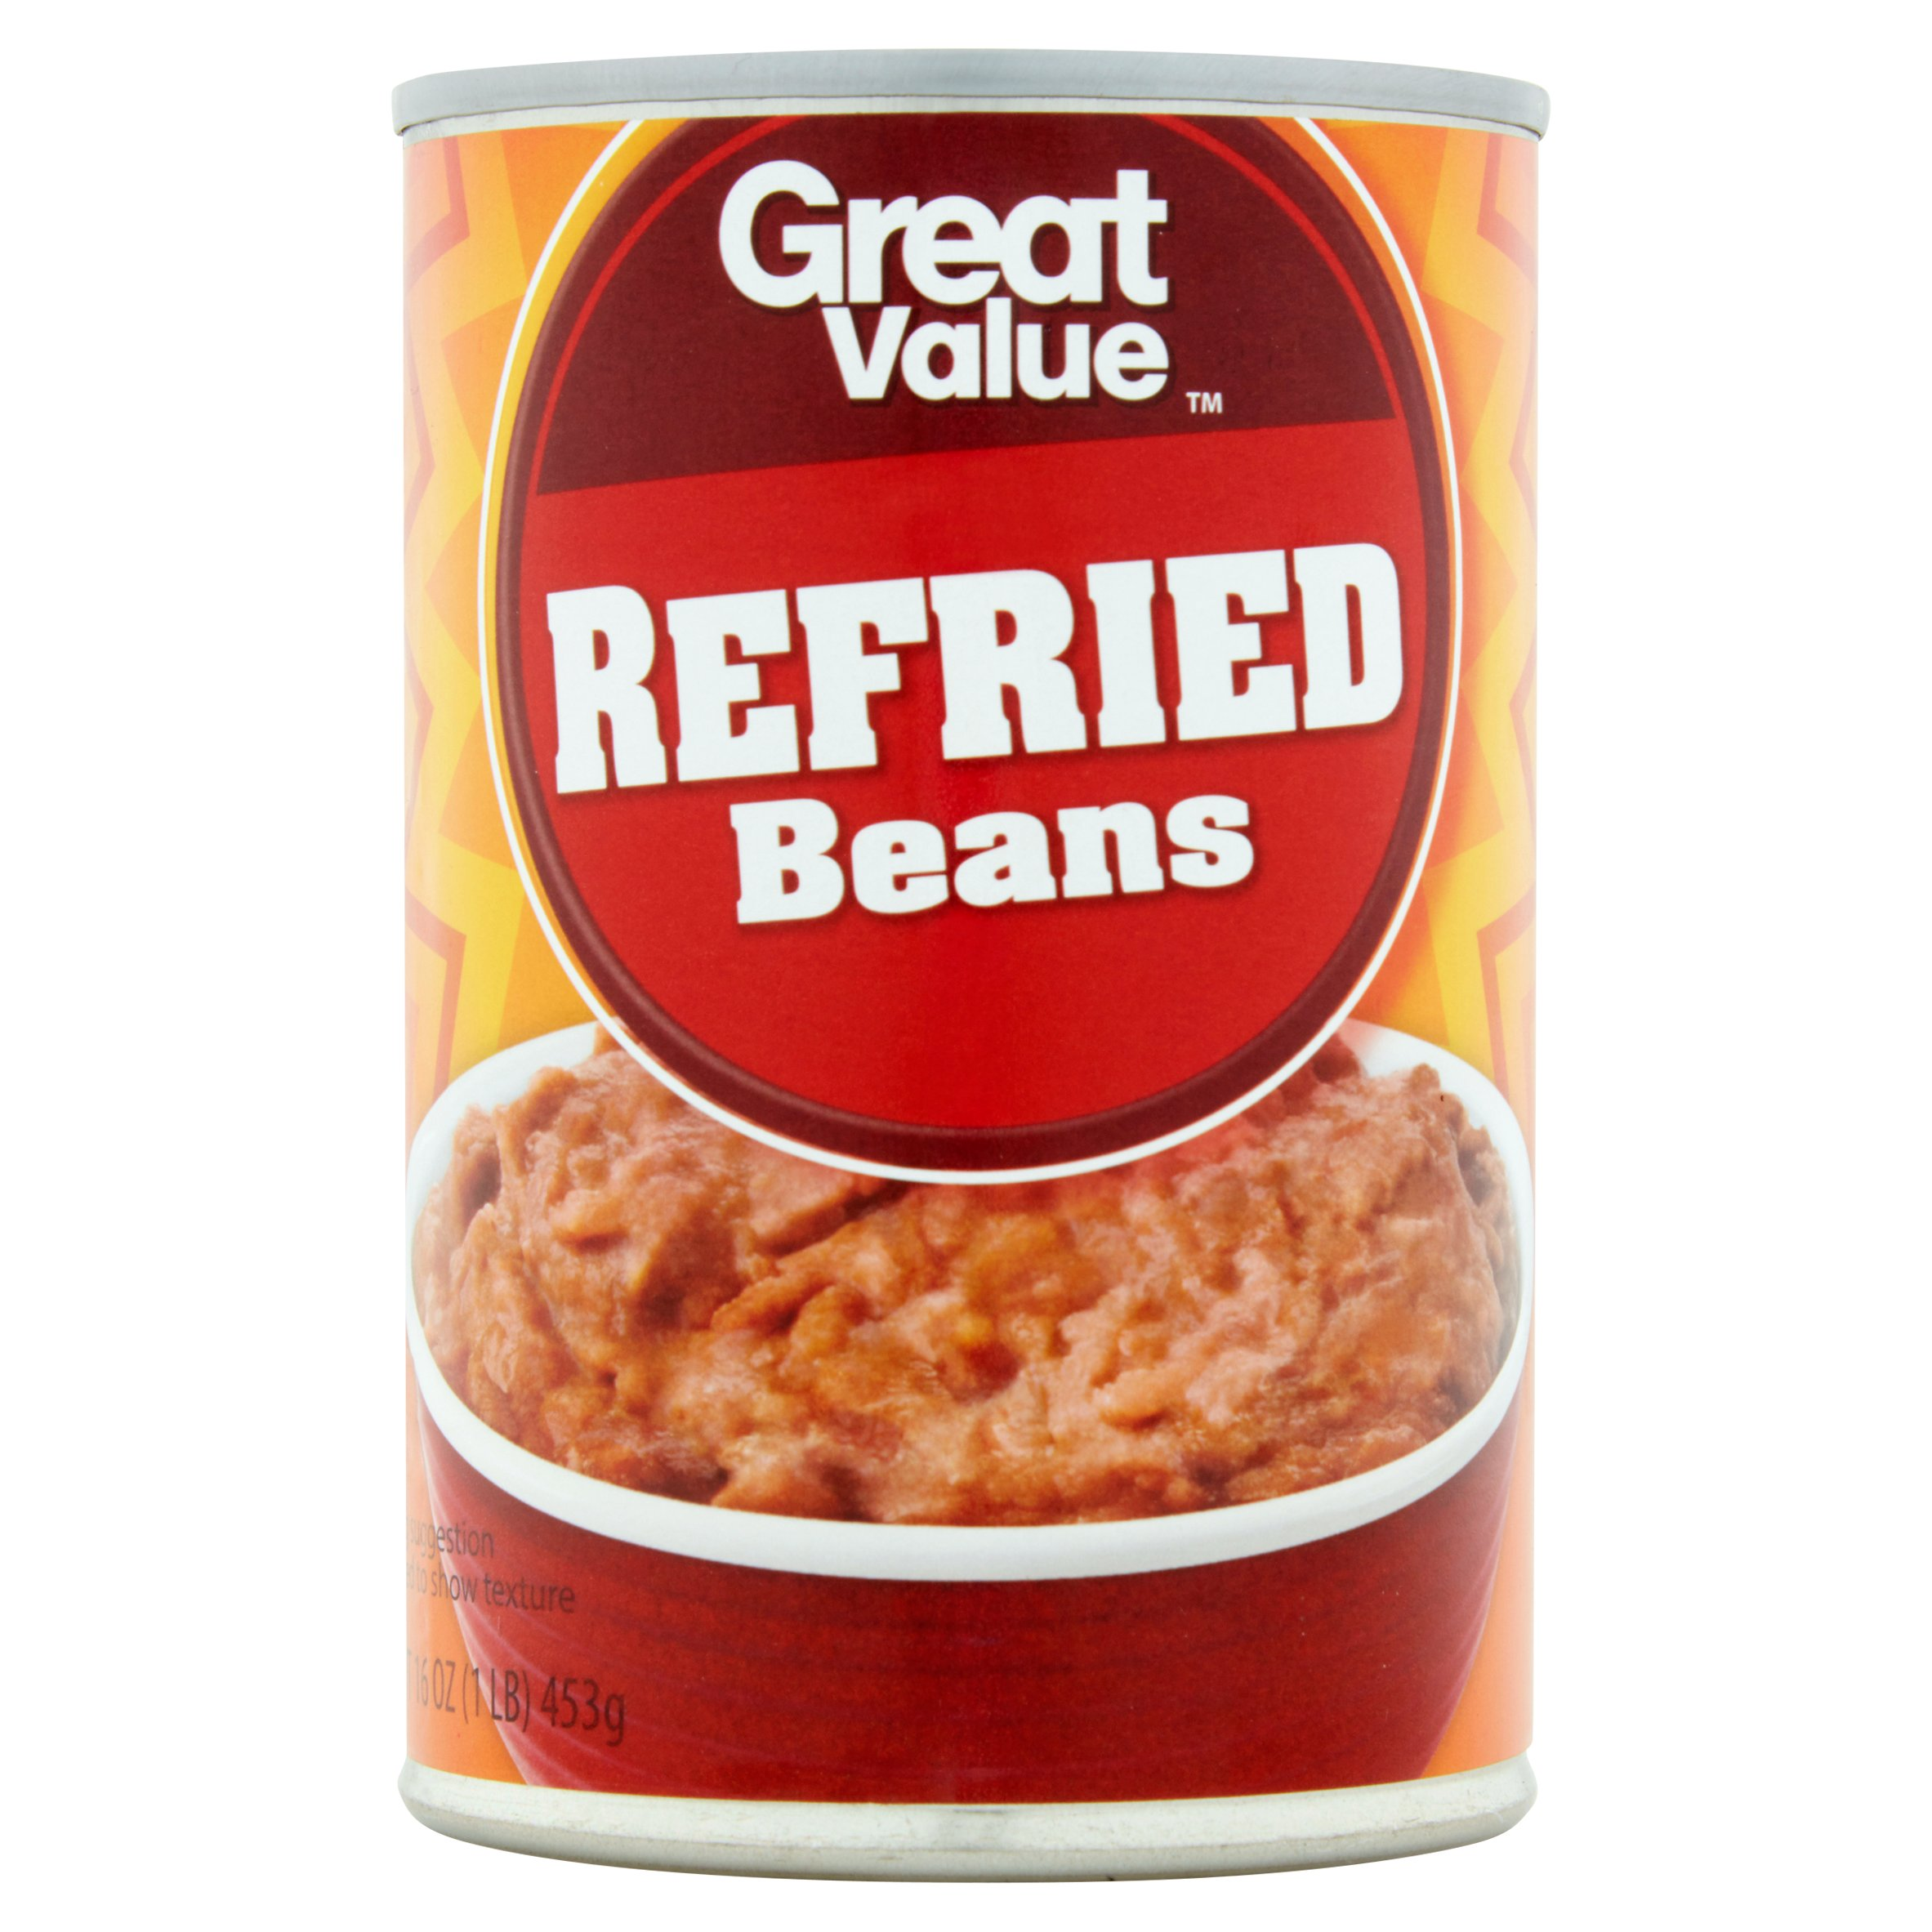 Can i give my dog refried beans